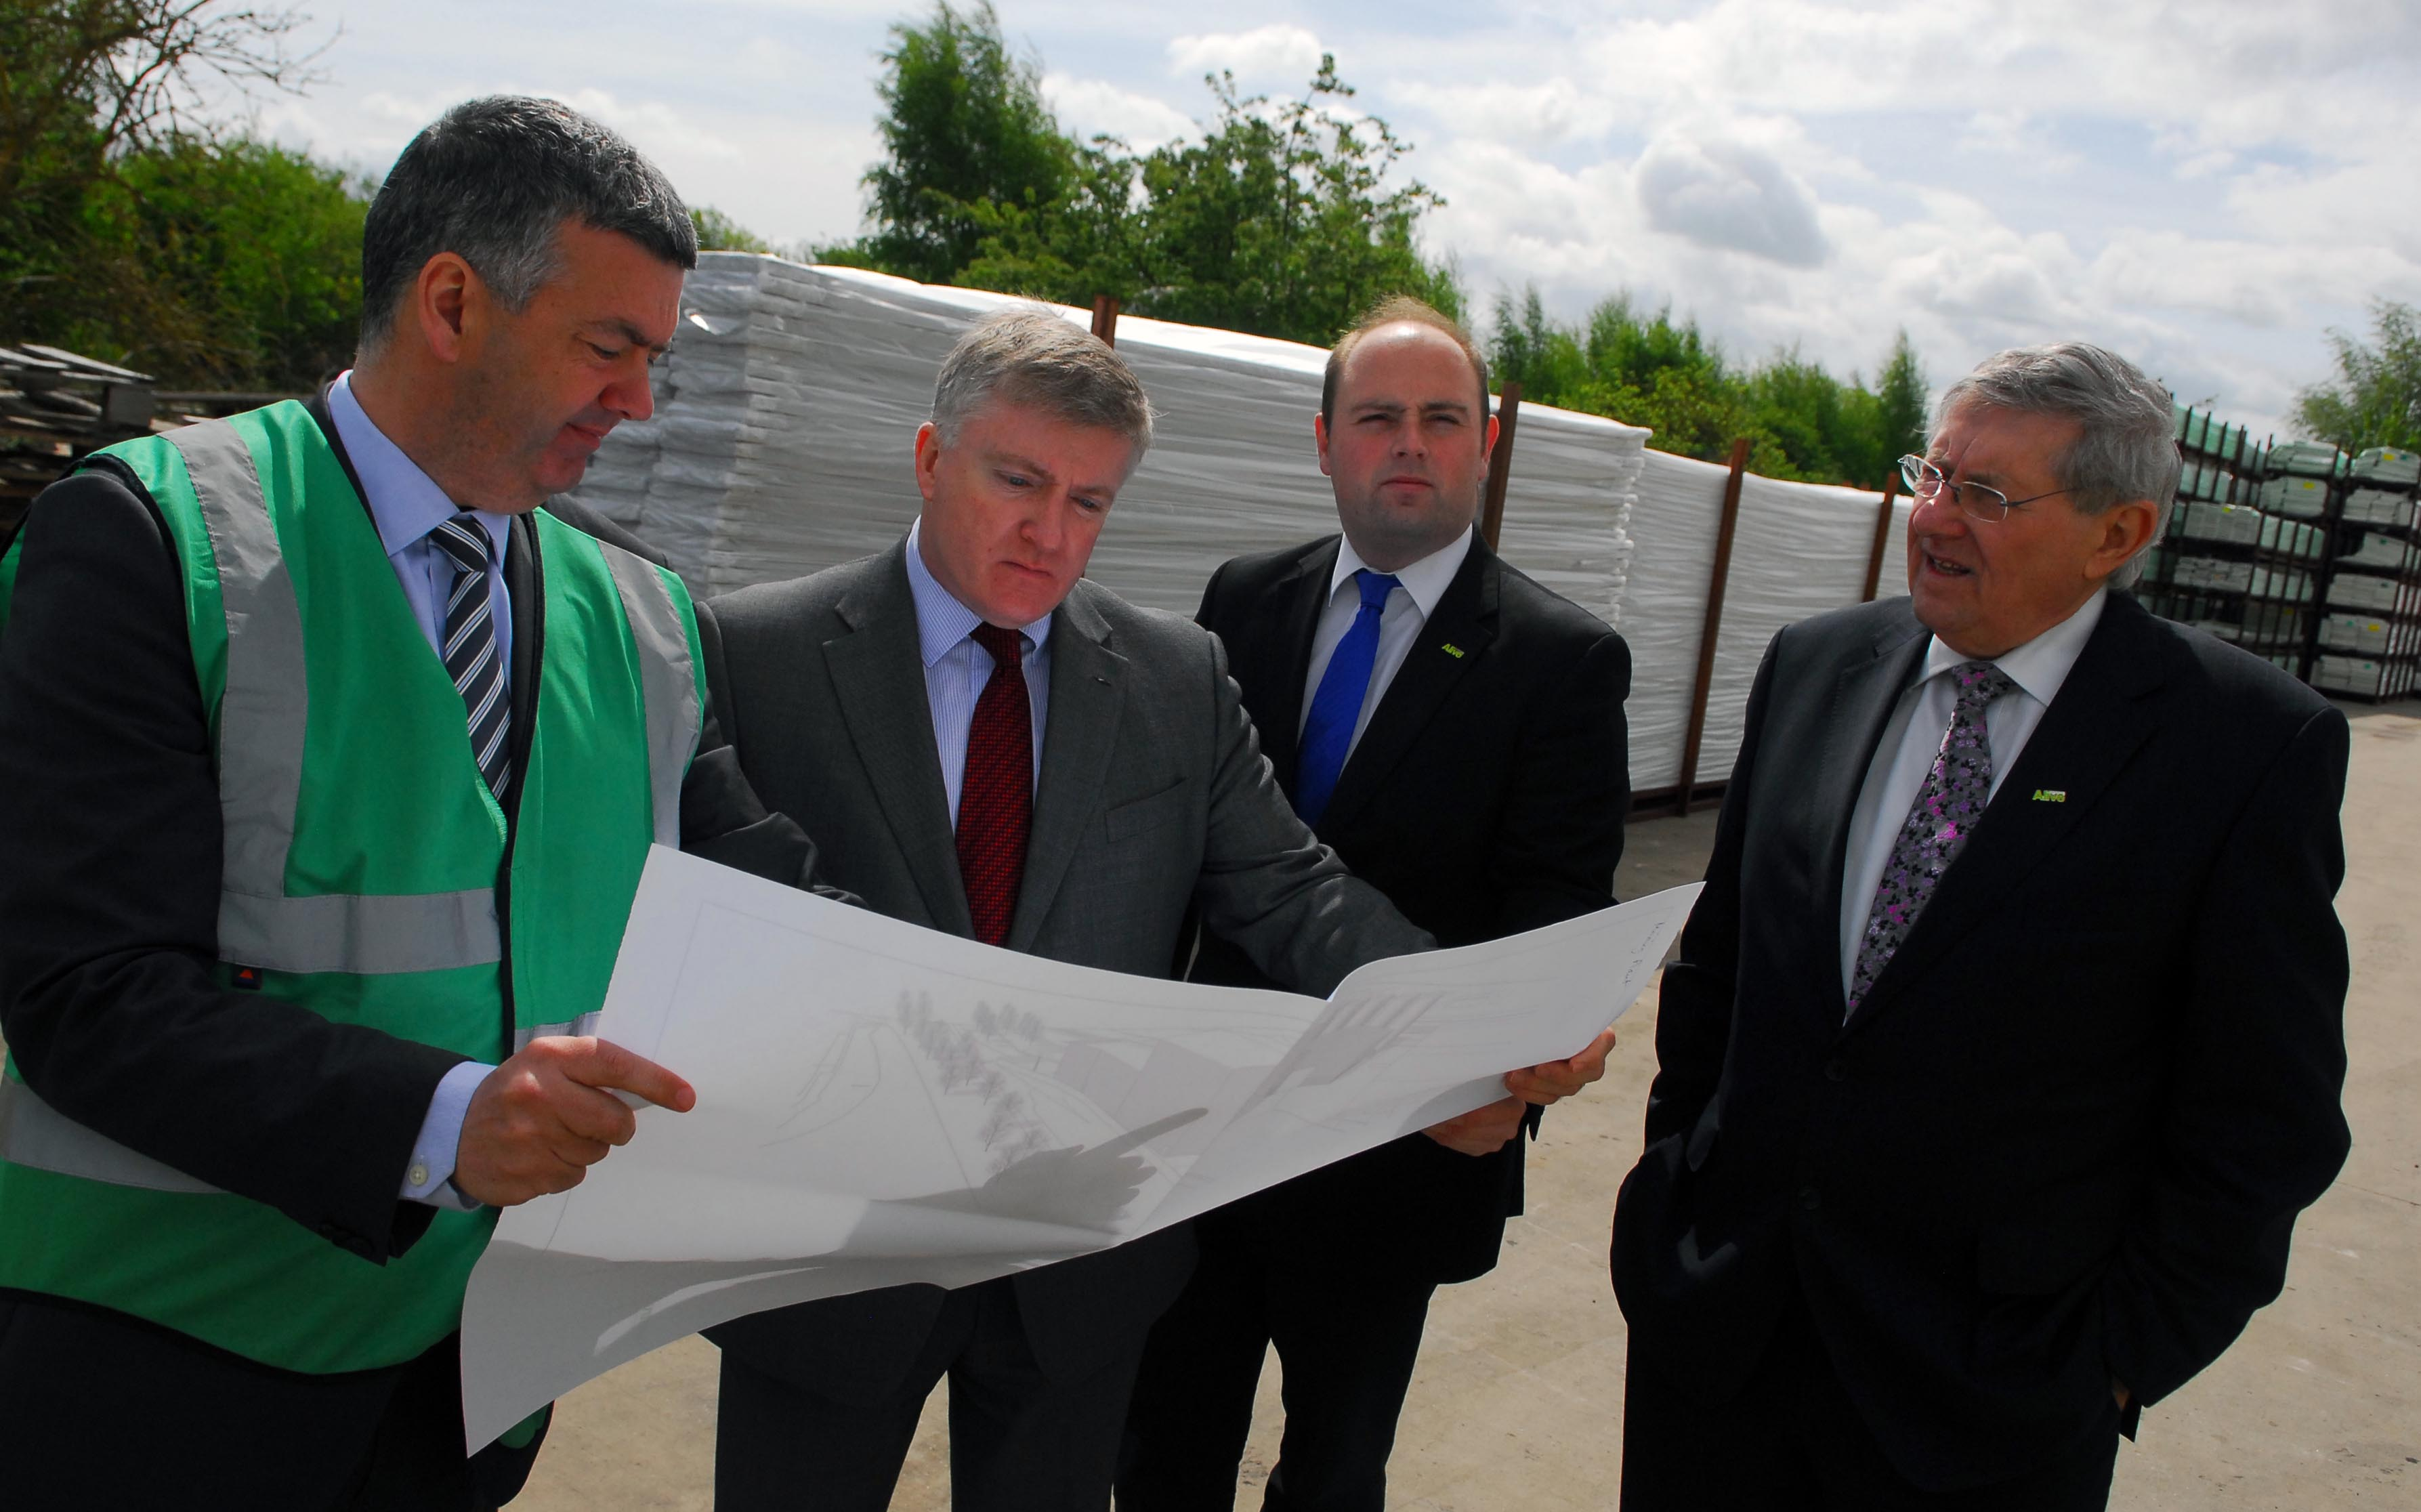 GOVERNMENT MINISTER VISITS FREEFOAM BUILDING PRODUCTS